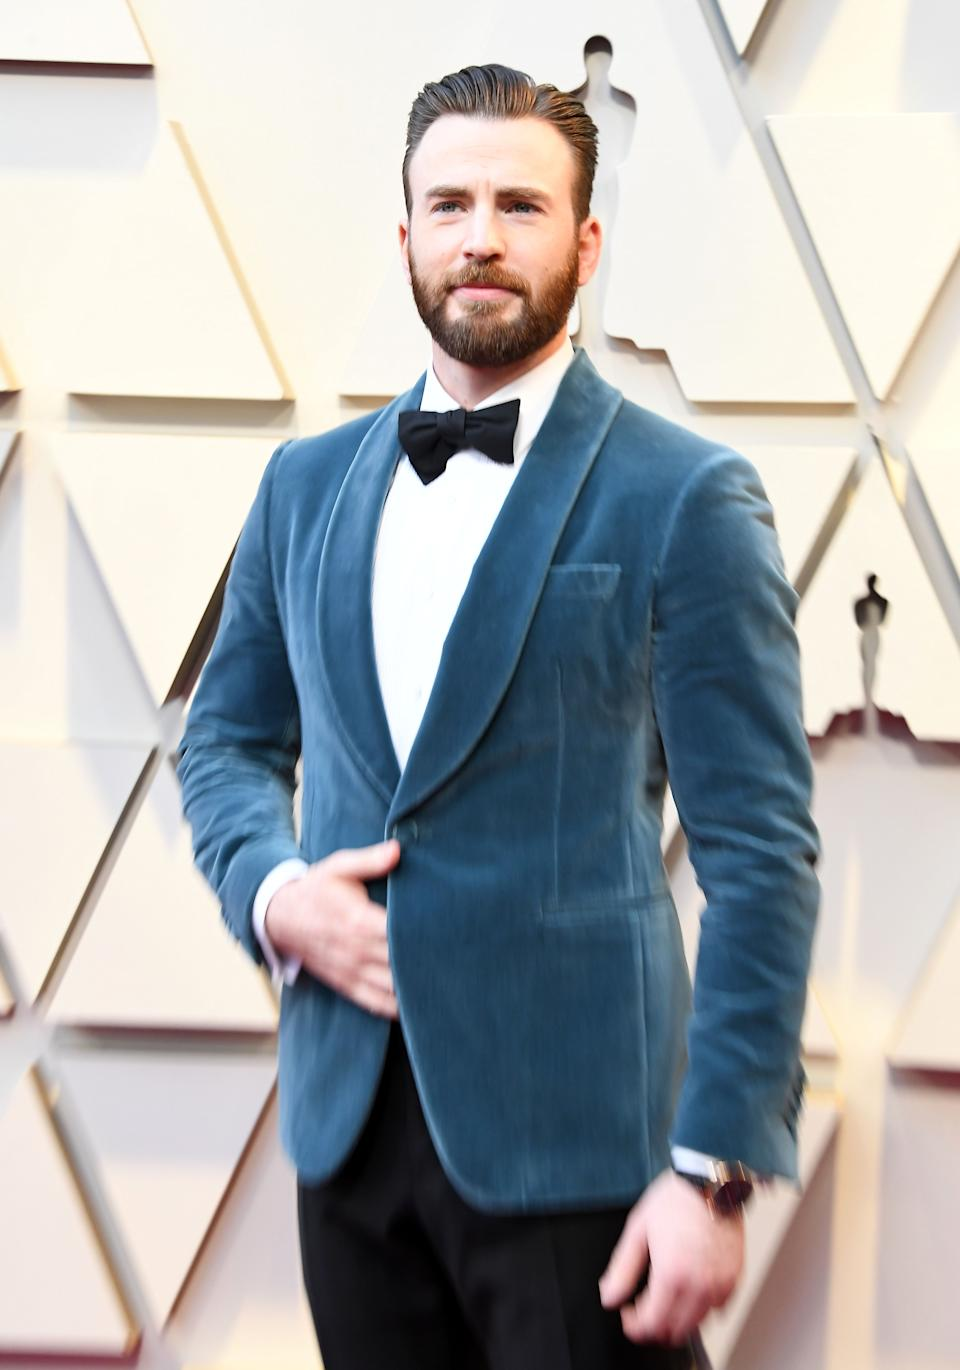 HOLLYWOOD, CALIFORNIA - FEBRUARY 24: Chris Evans arrives at the 91st Annual Academy Awards at Hollywood and Highland on February 24, 2019 in Hollywood, California. (Photo by Steve Granitz/WireImage)